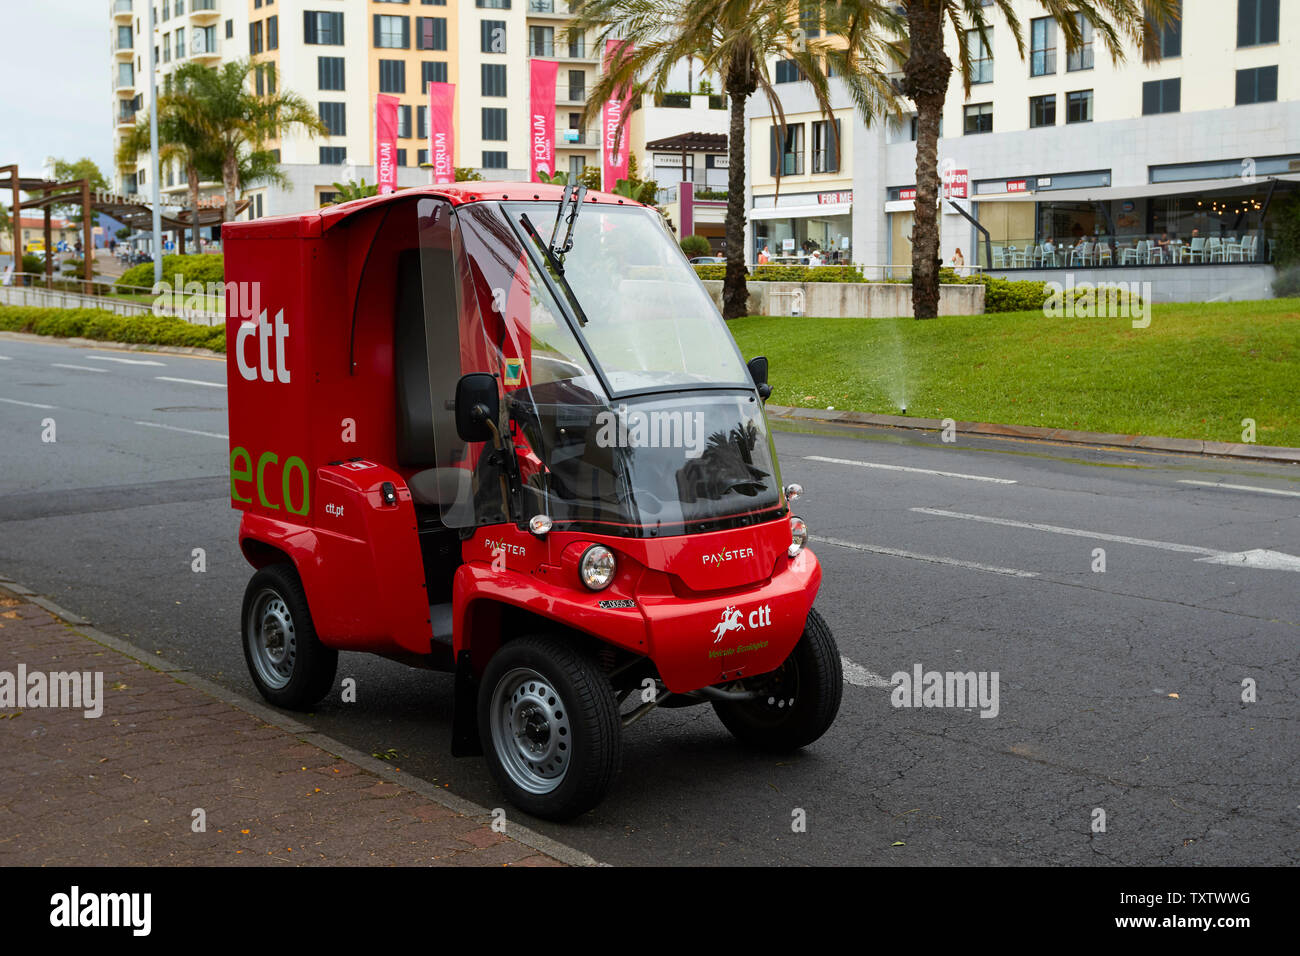 Red environmentally friendly Eco-vehicle used by postal service in Funchal, Madeira, Portugal, European Union - Stock Image